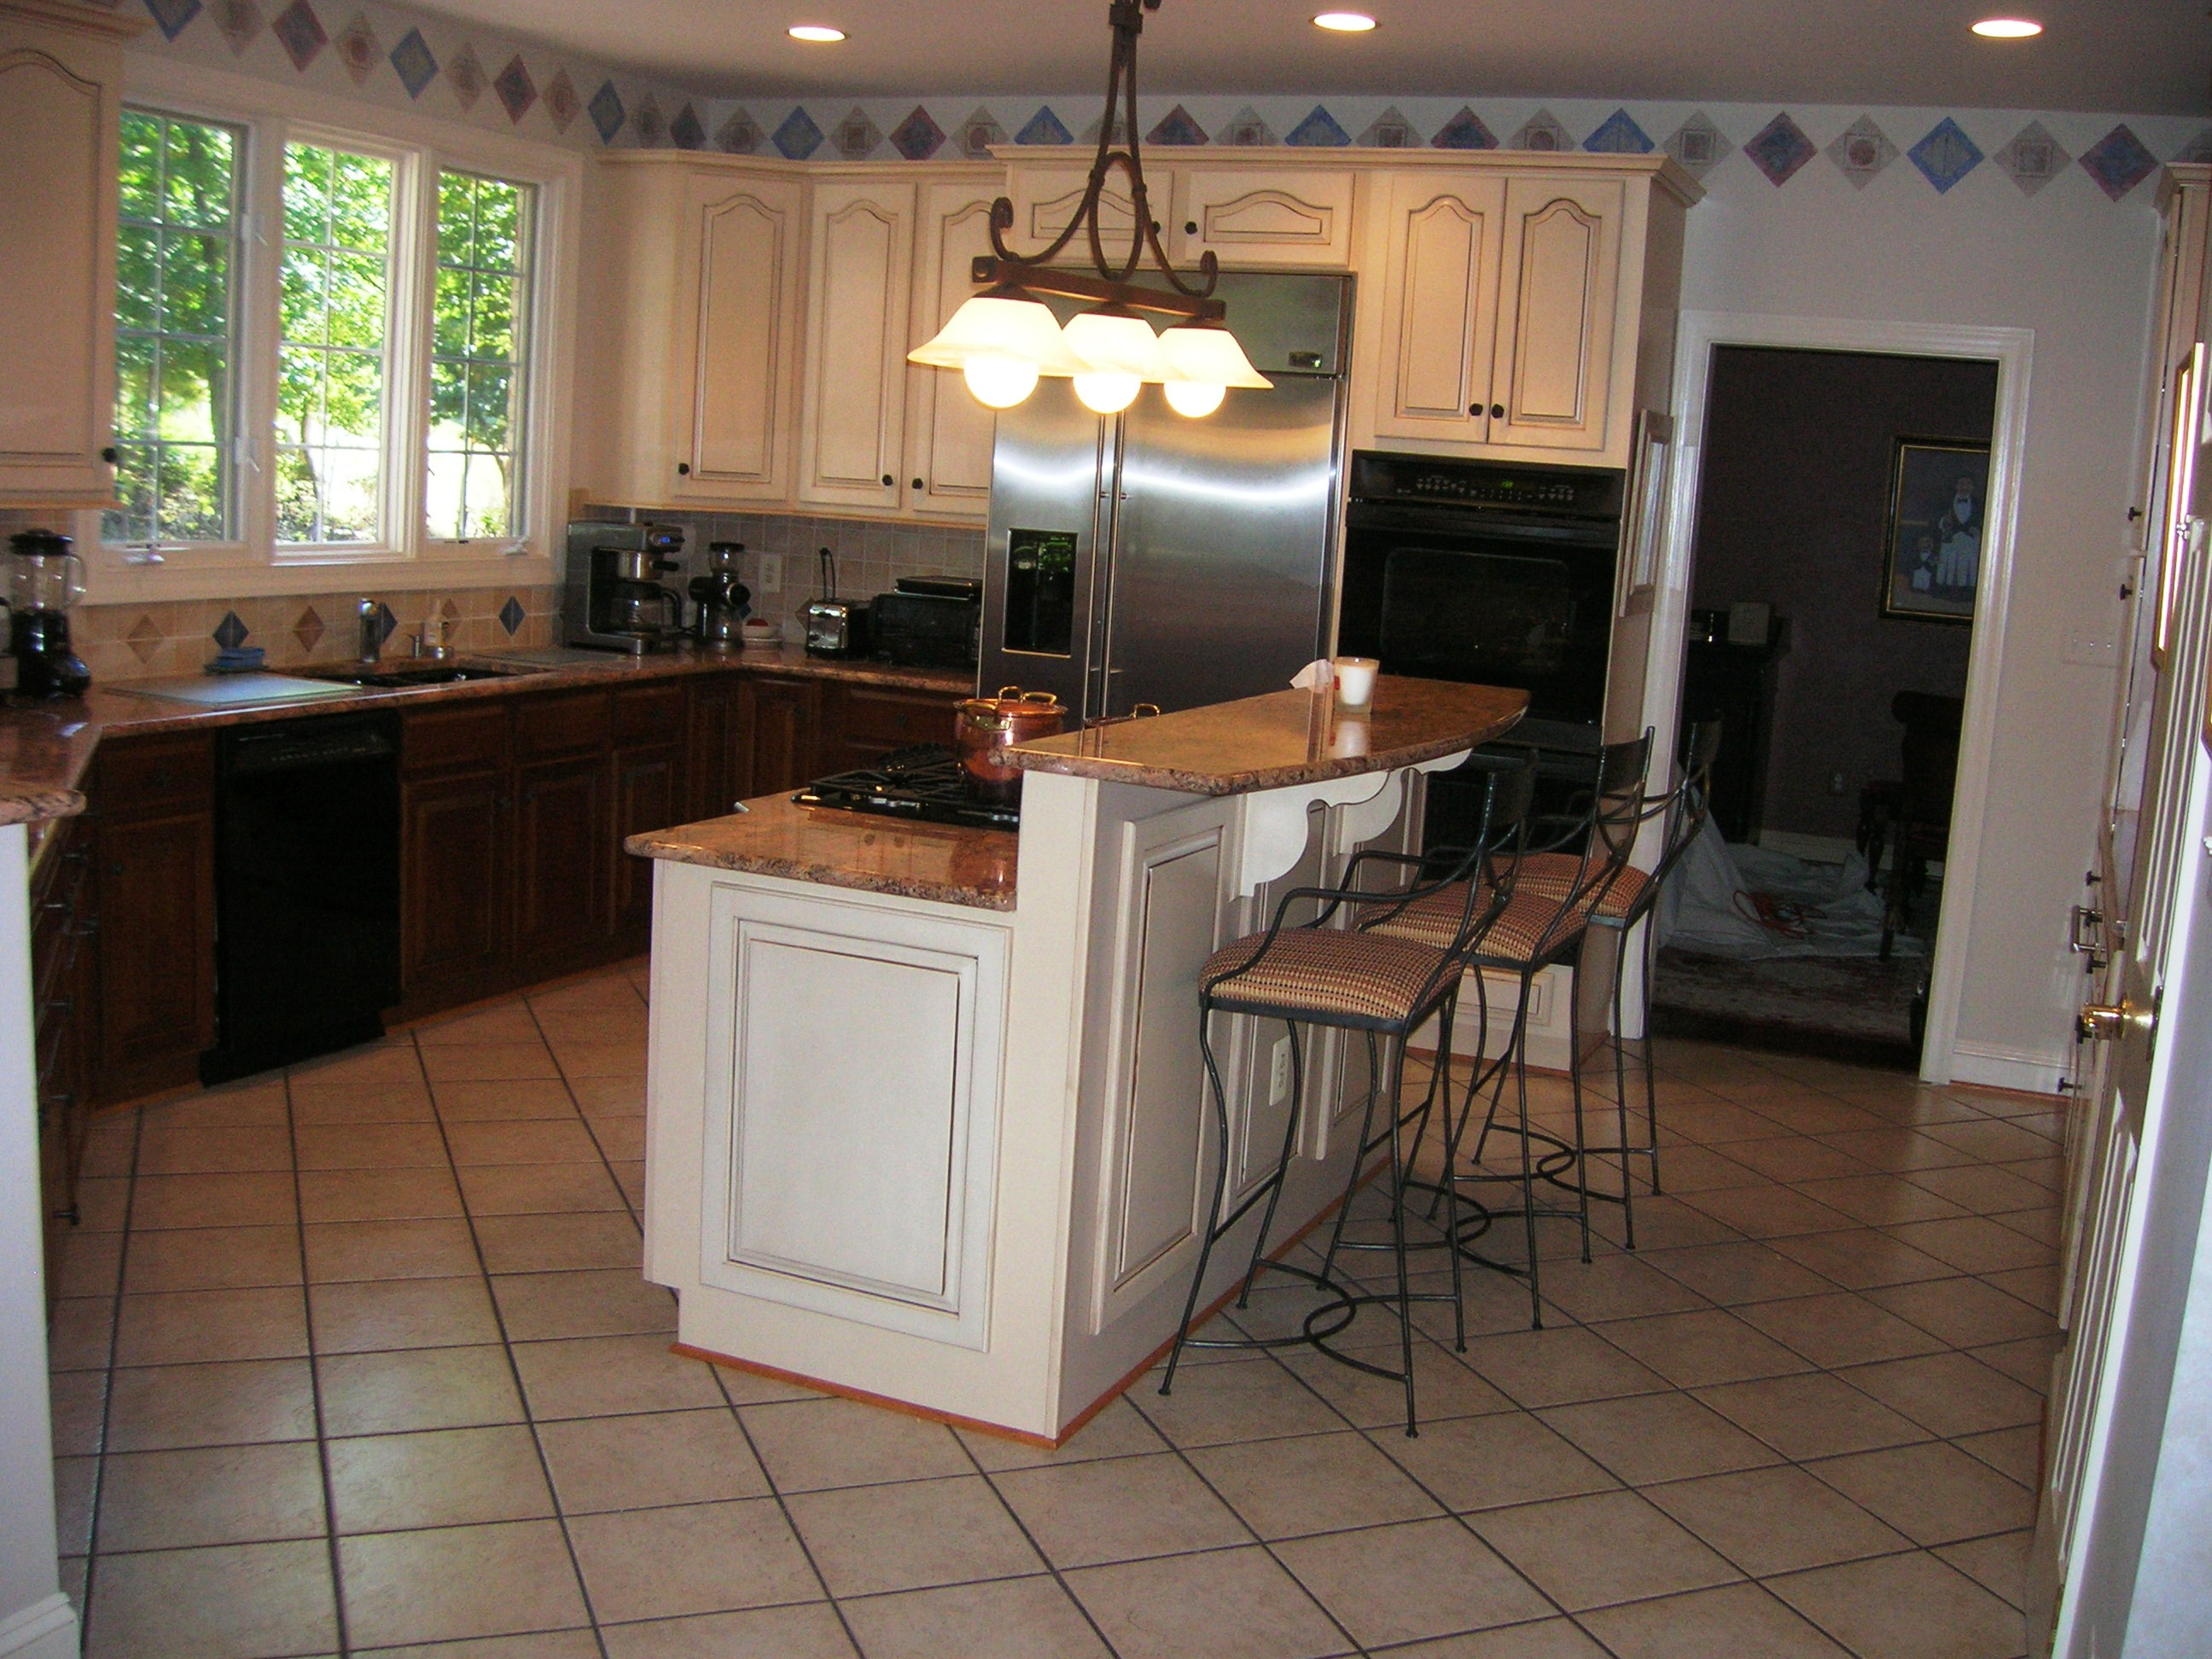 Finding the right flooring the pros and cons of high end for Kitchen flooring options pros and cons